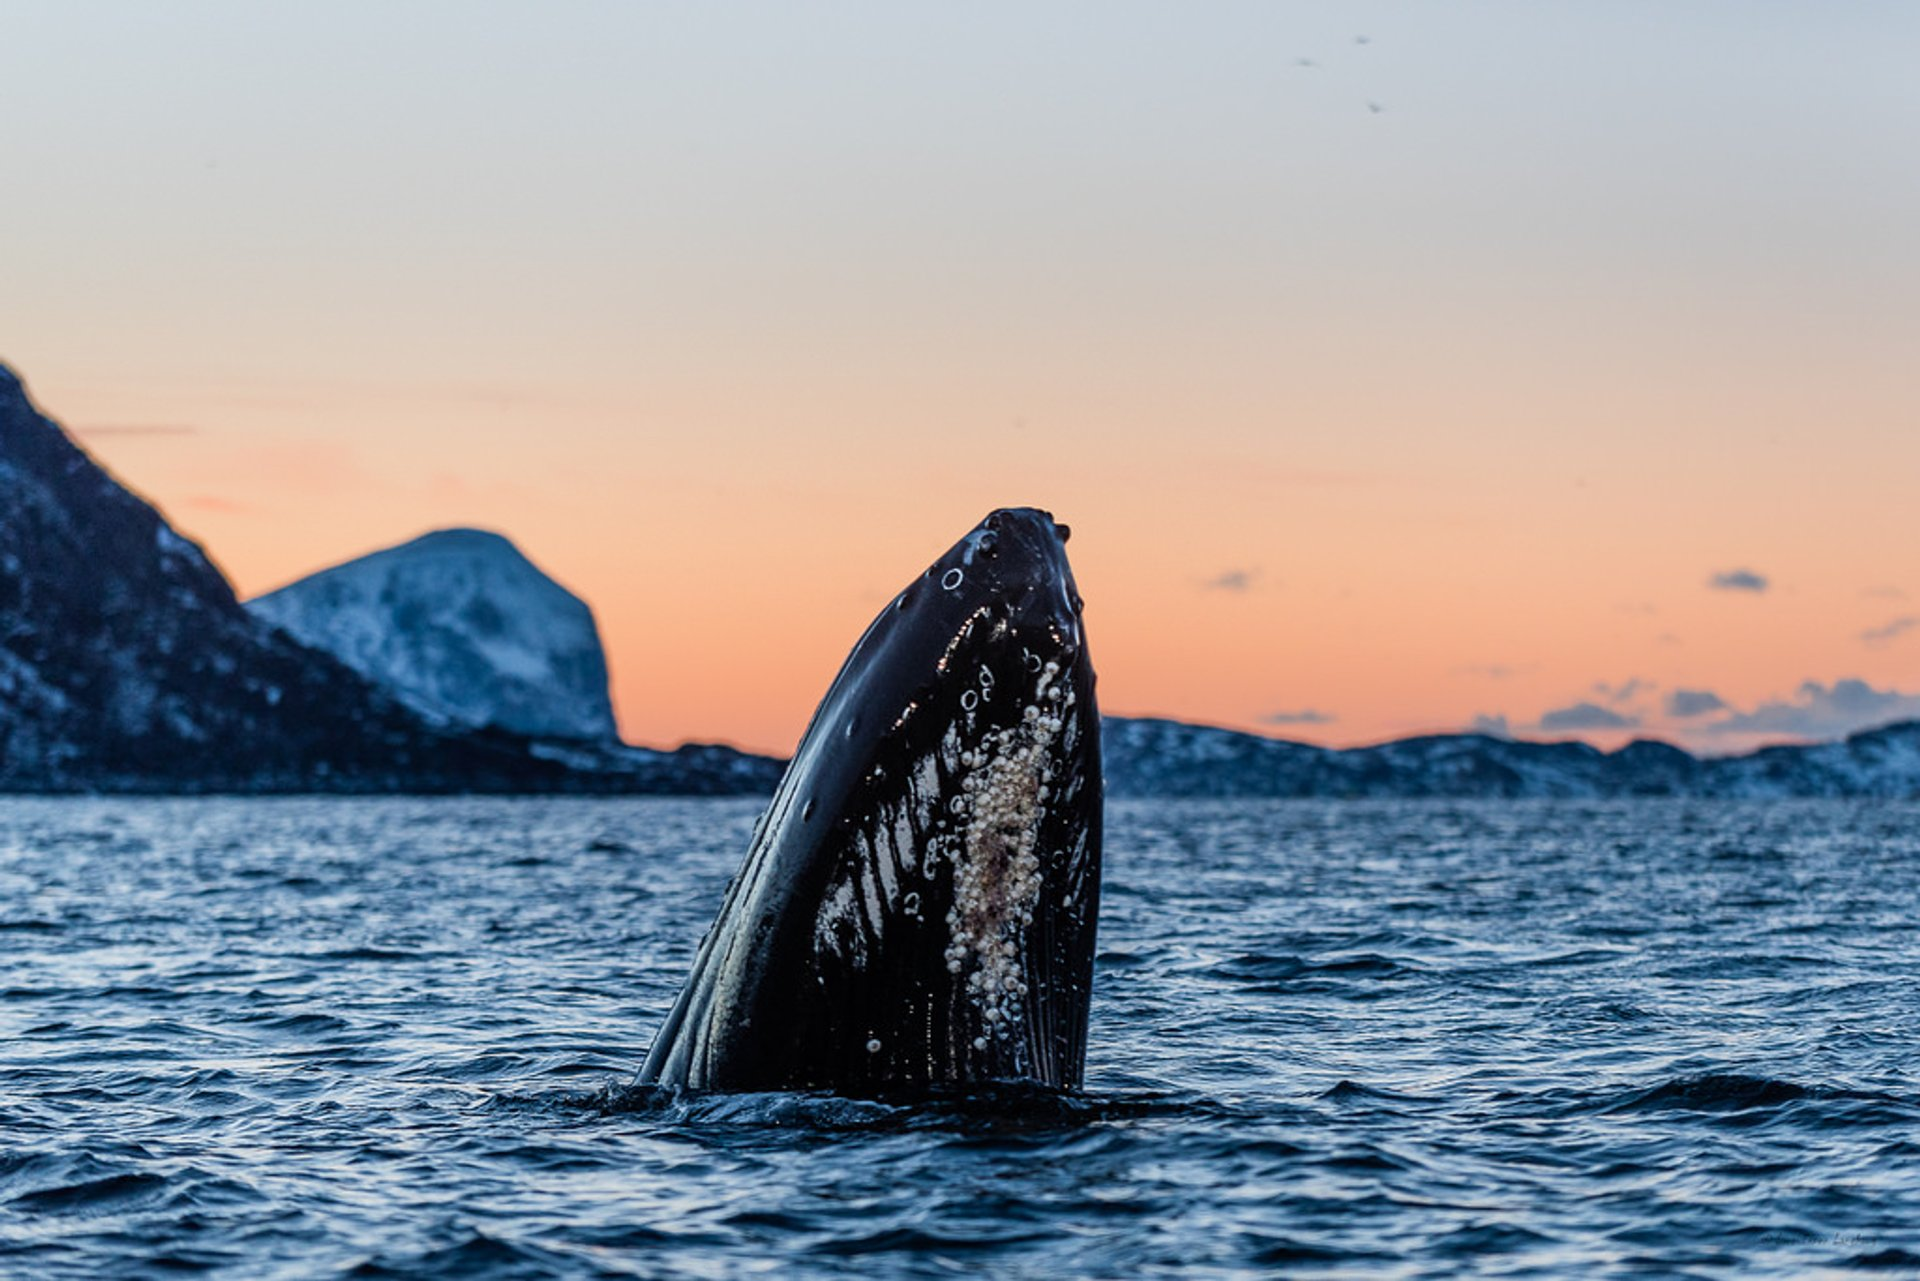 Whale Safari in Norway - Best Season 2019